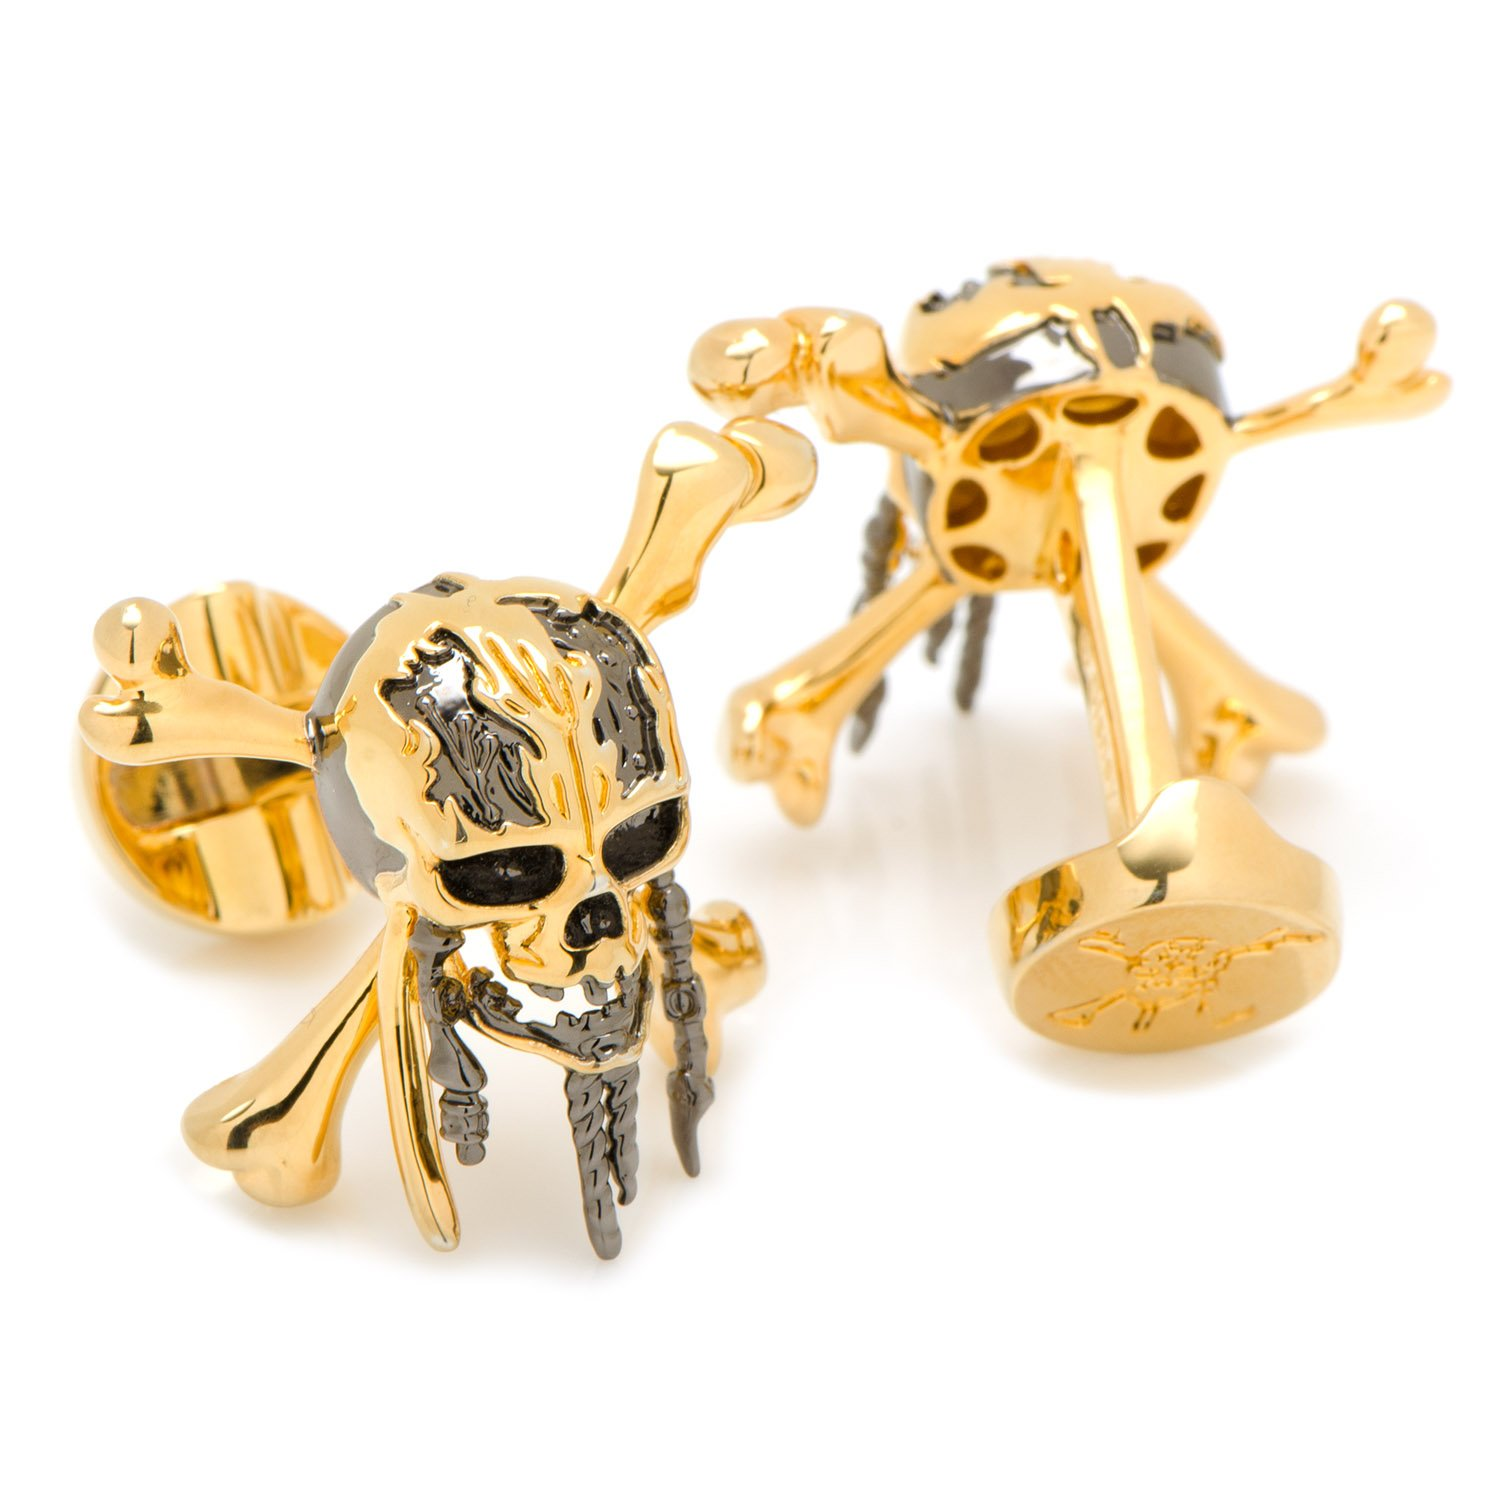 Disney 3D Black and Gold Skull and Crossbones Cufflinks, Officially Licensed by Cufflinks (Image #1)